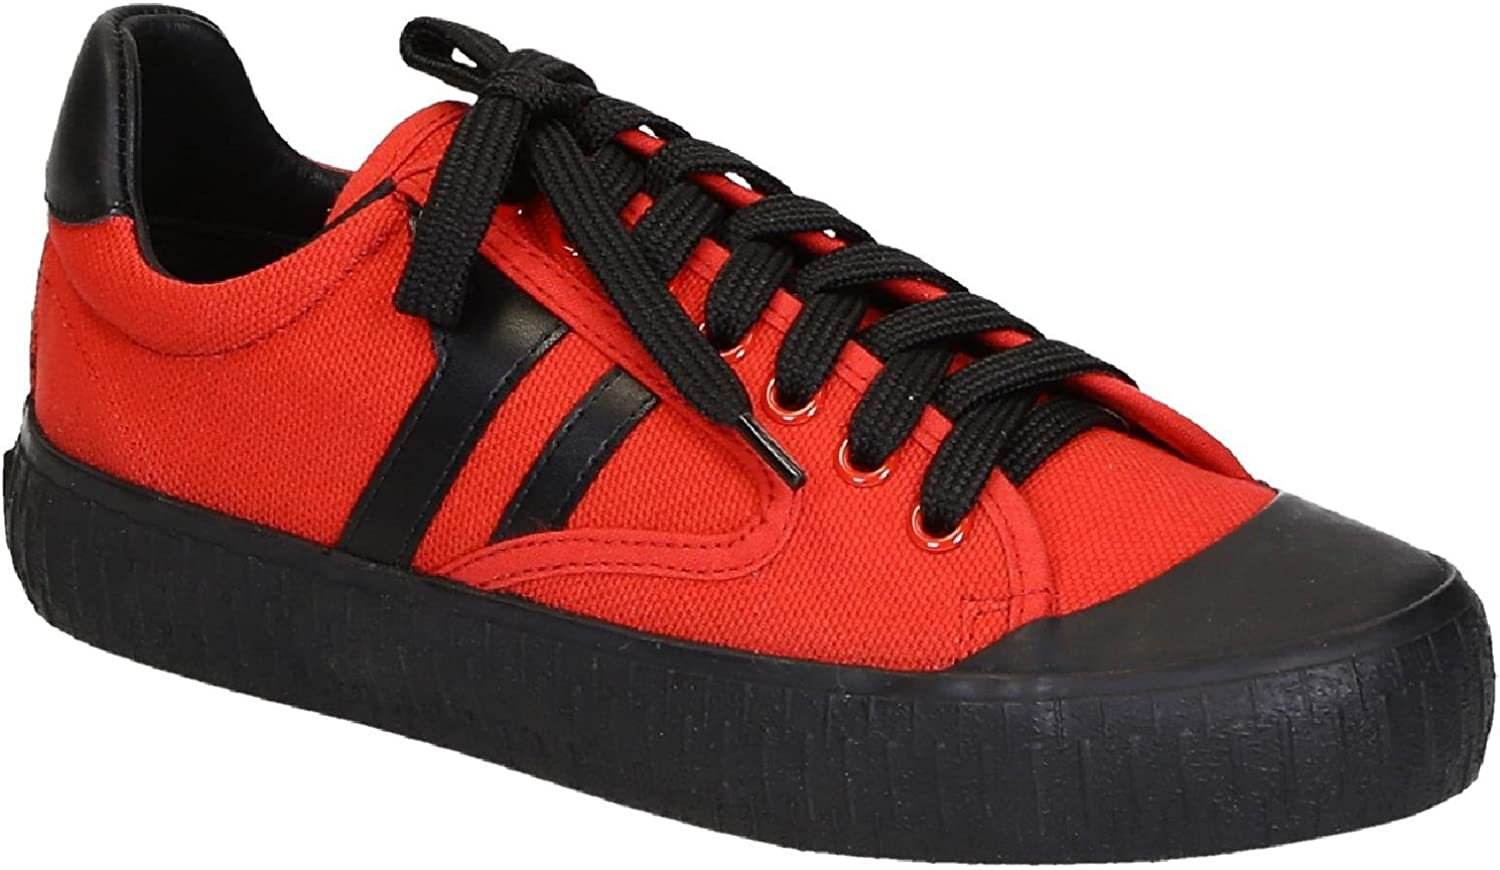 Red Canvas Sneakers Shoes